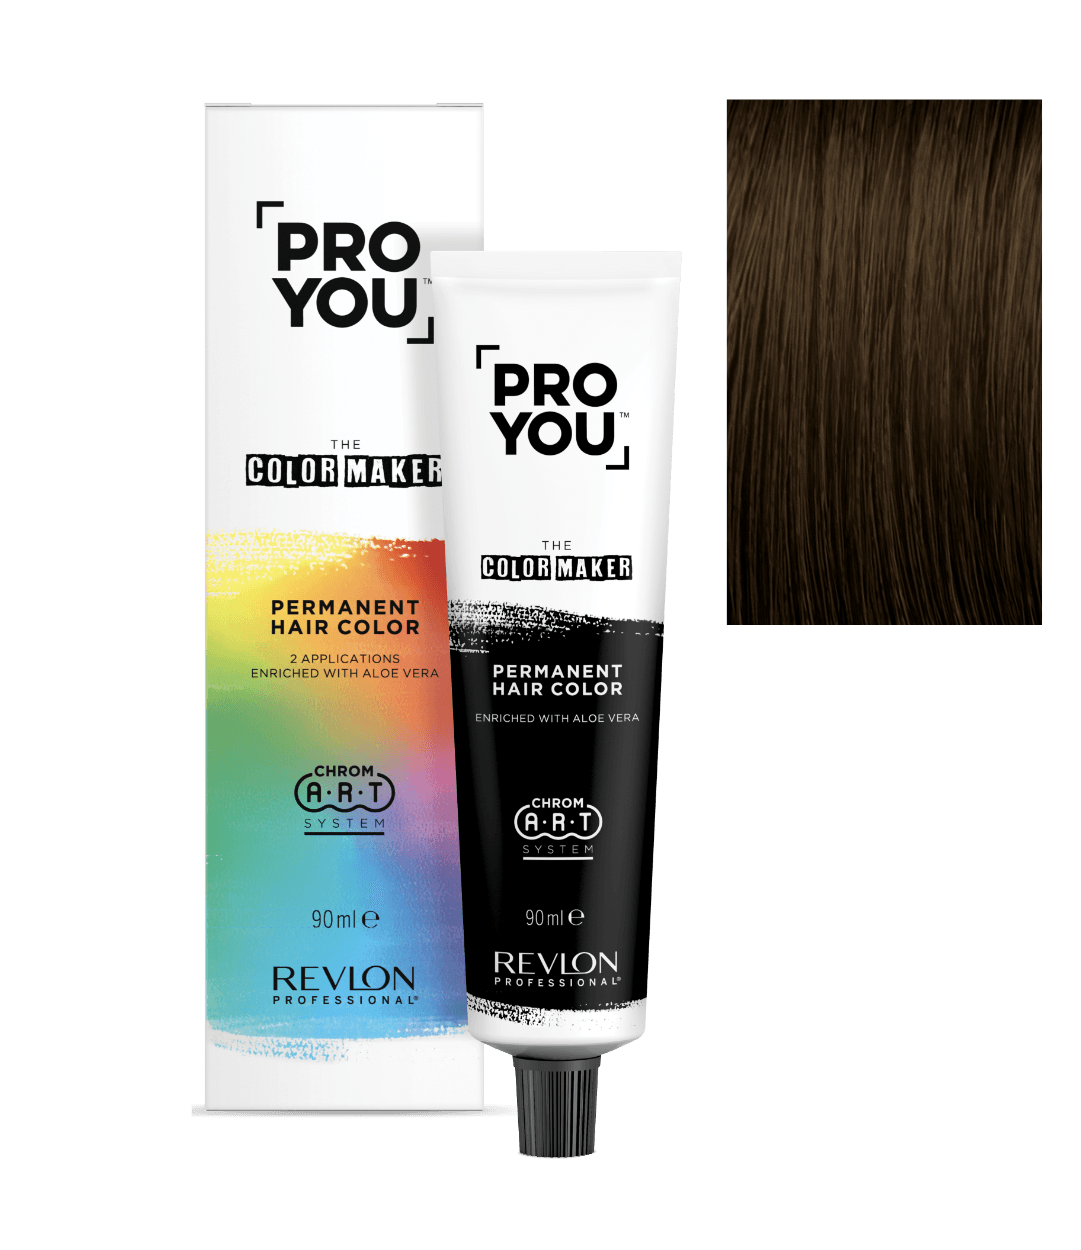 revlon professional ProYou Color Maker 5.00 | Duo Cosmetics